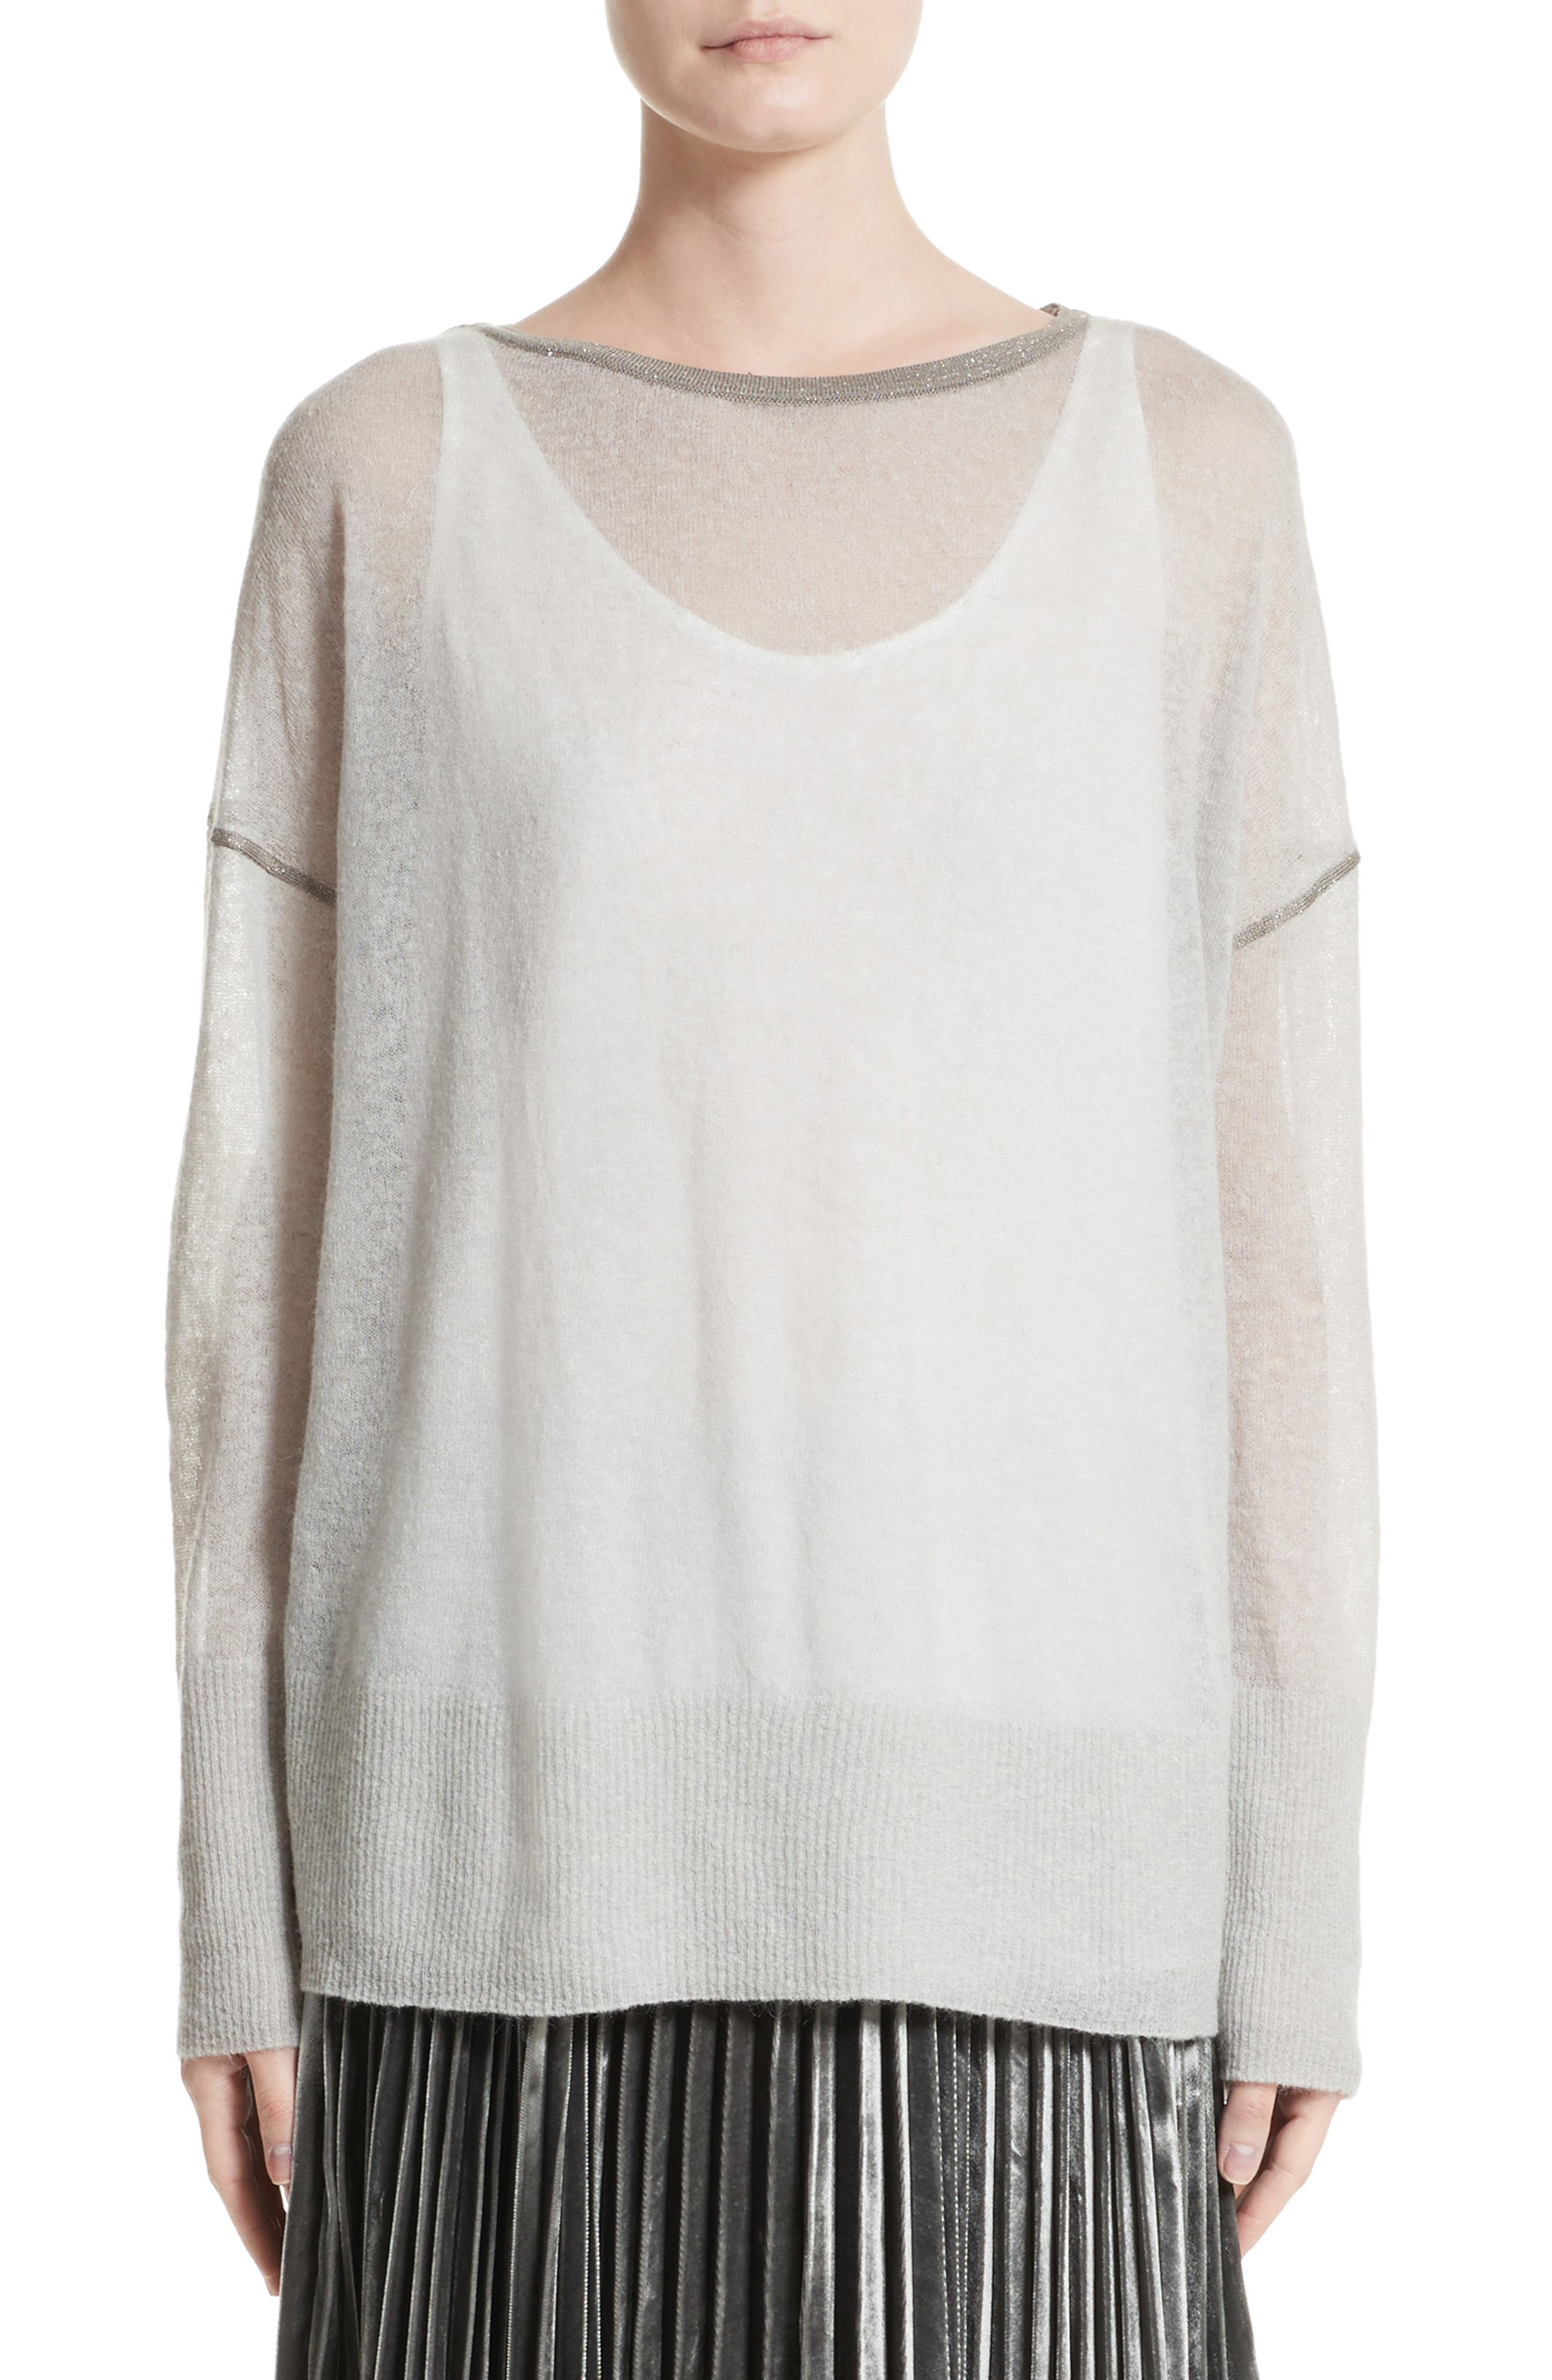 Alternate Image 1 Selected - Lafayette 148 New York Sequin Trim Sweater with Tank